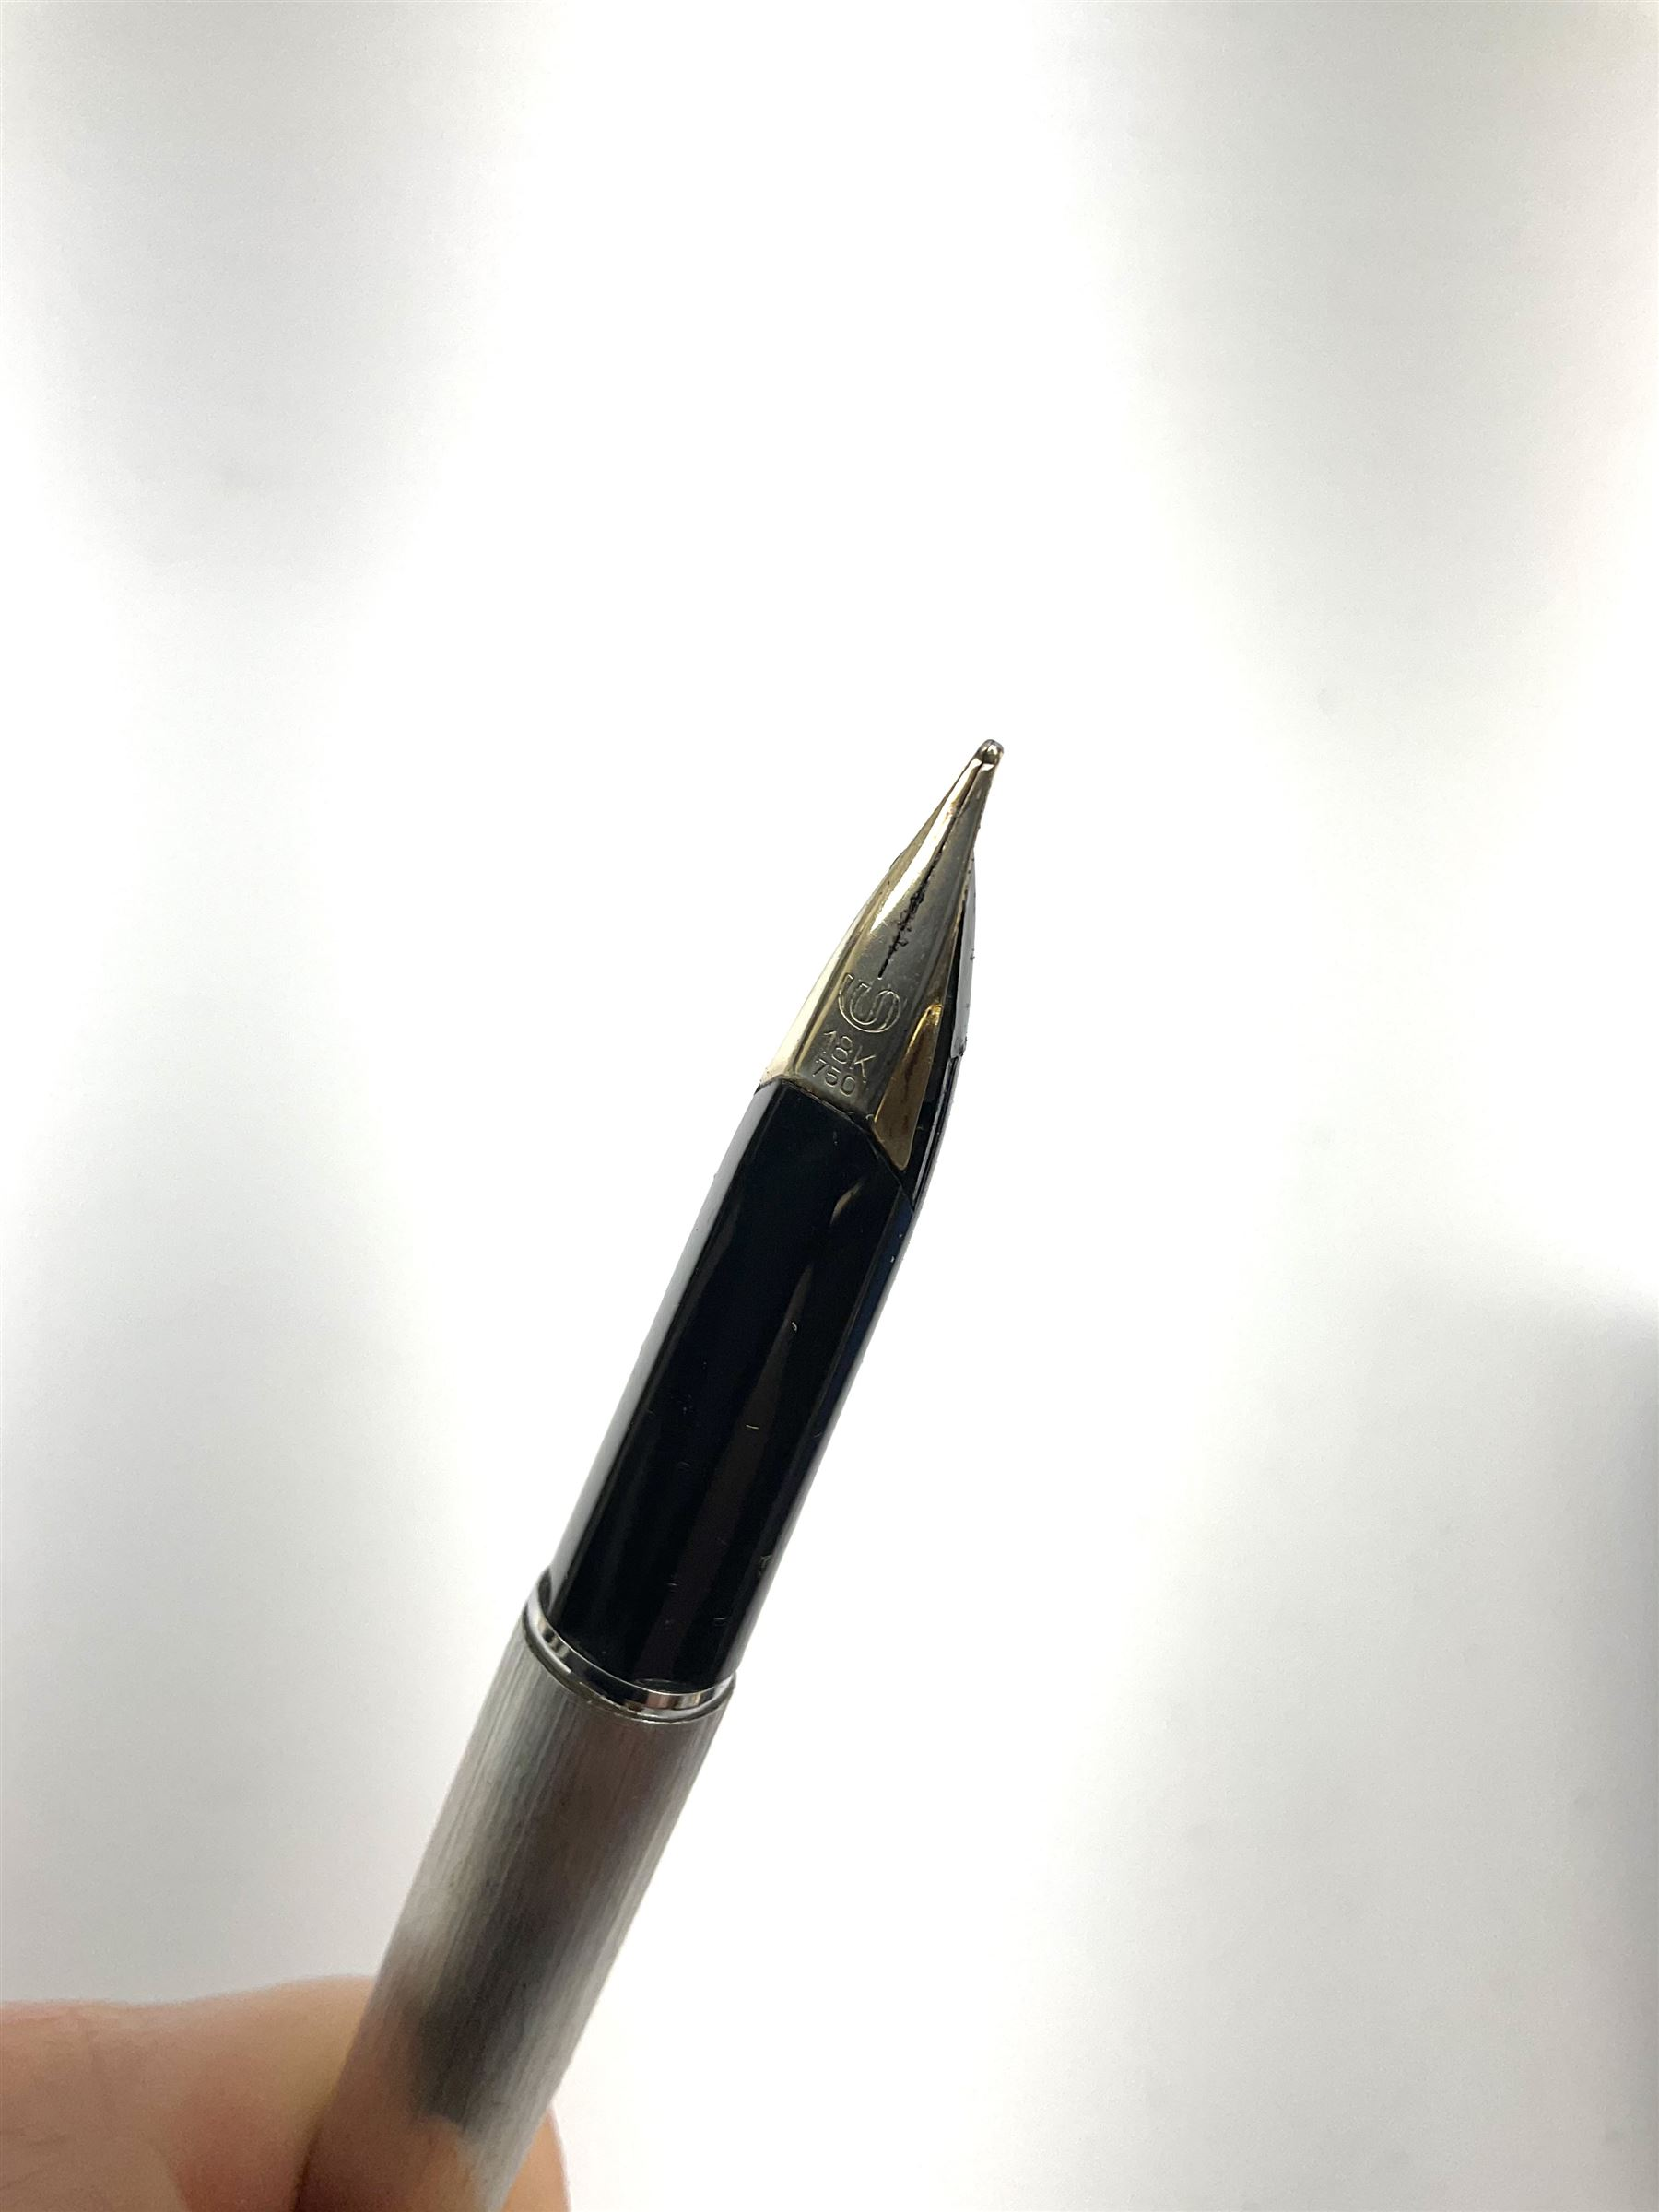 Waterman fountain pen with 18k gold nib - Image 2 of 2